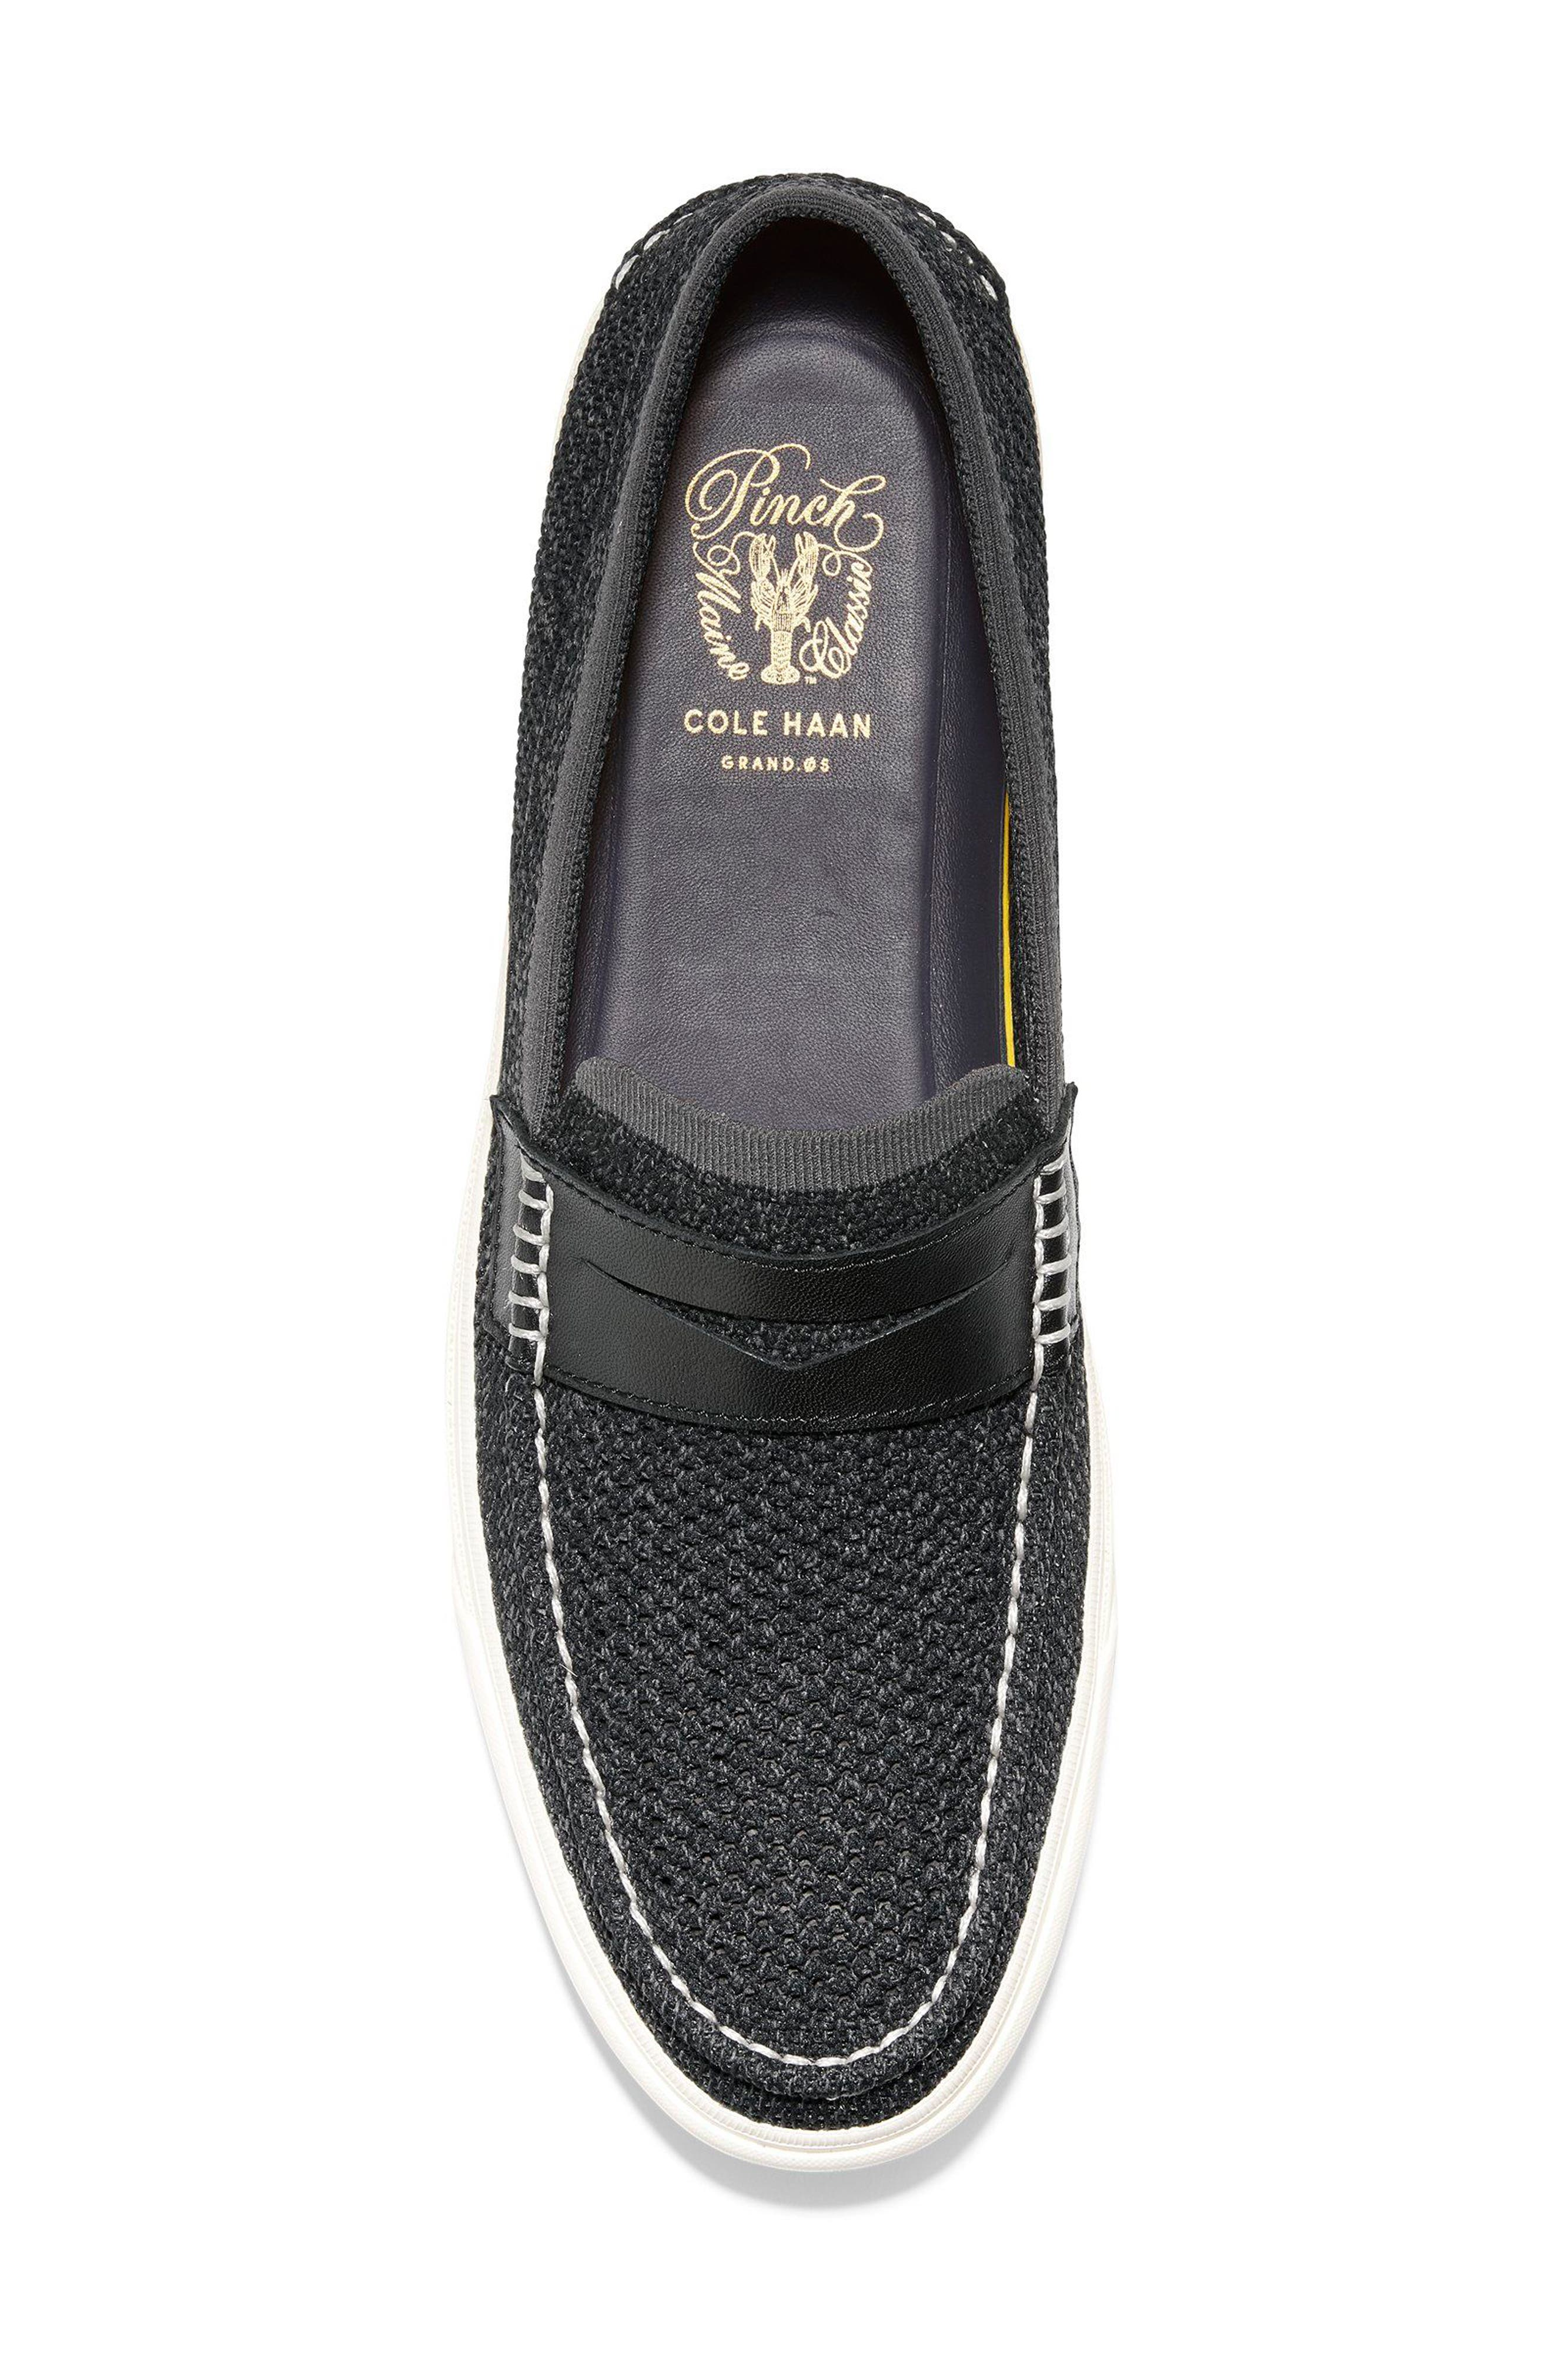 Pinch Weekend Stitch Penny Loafer,                             Alternate thumbnail 5, color,                             001